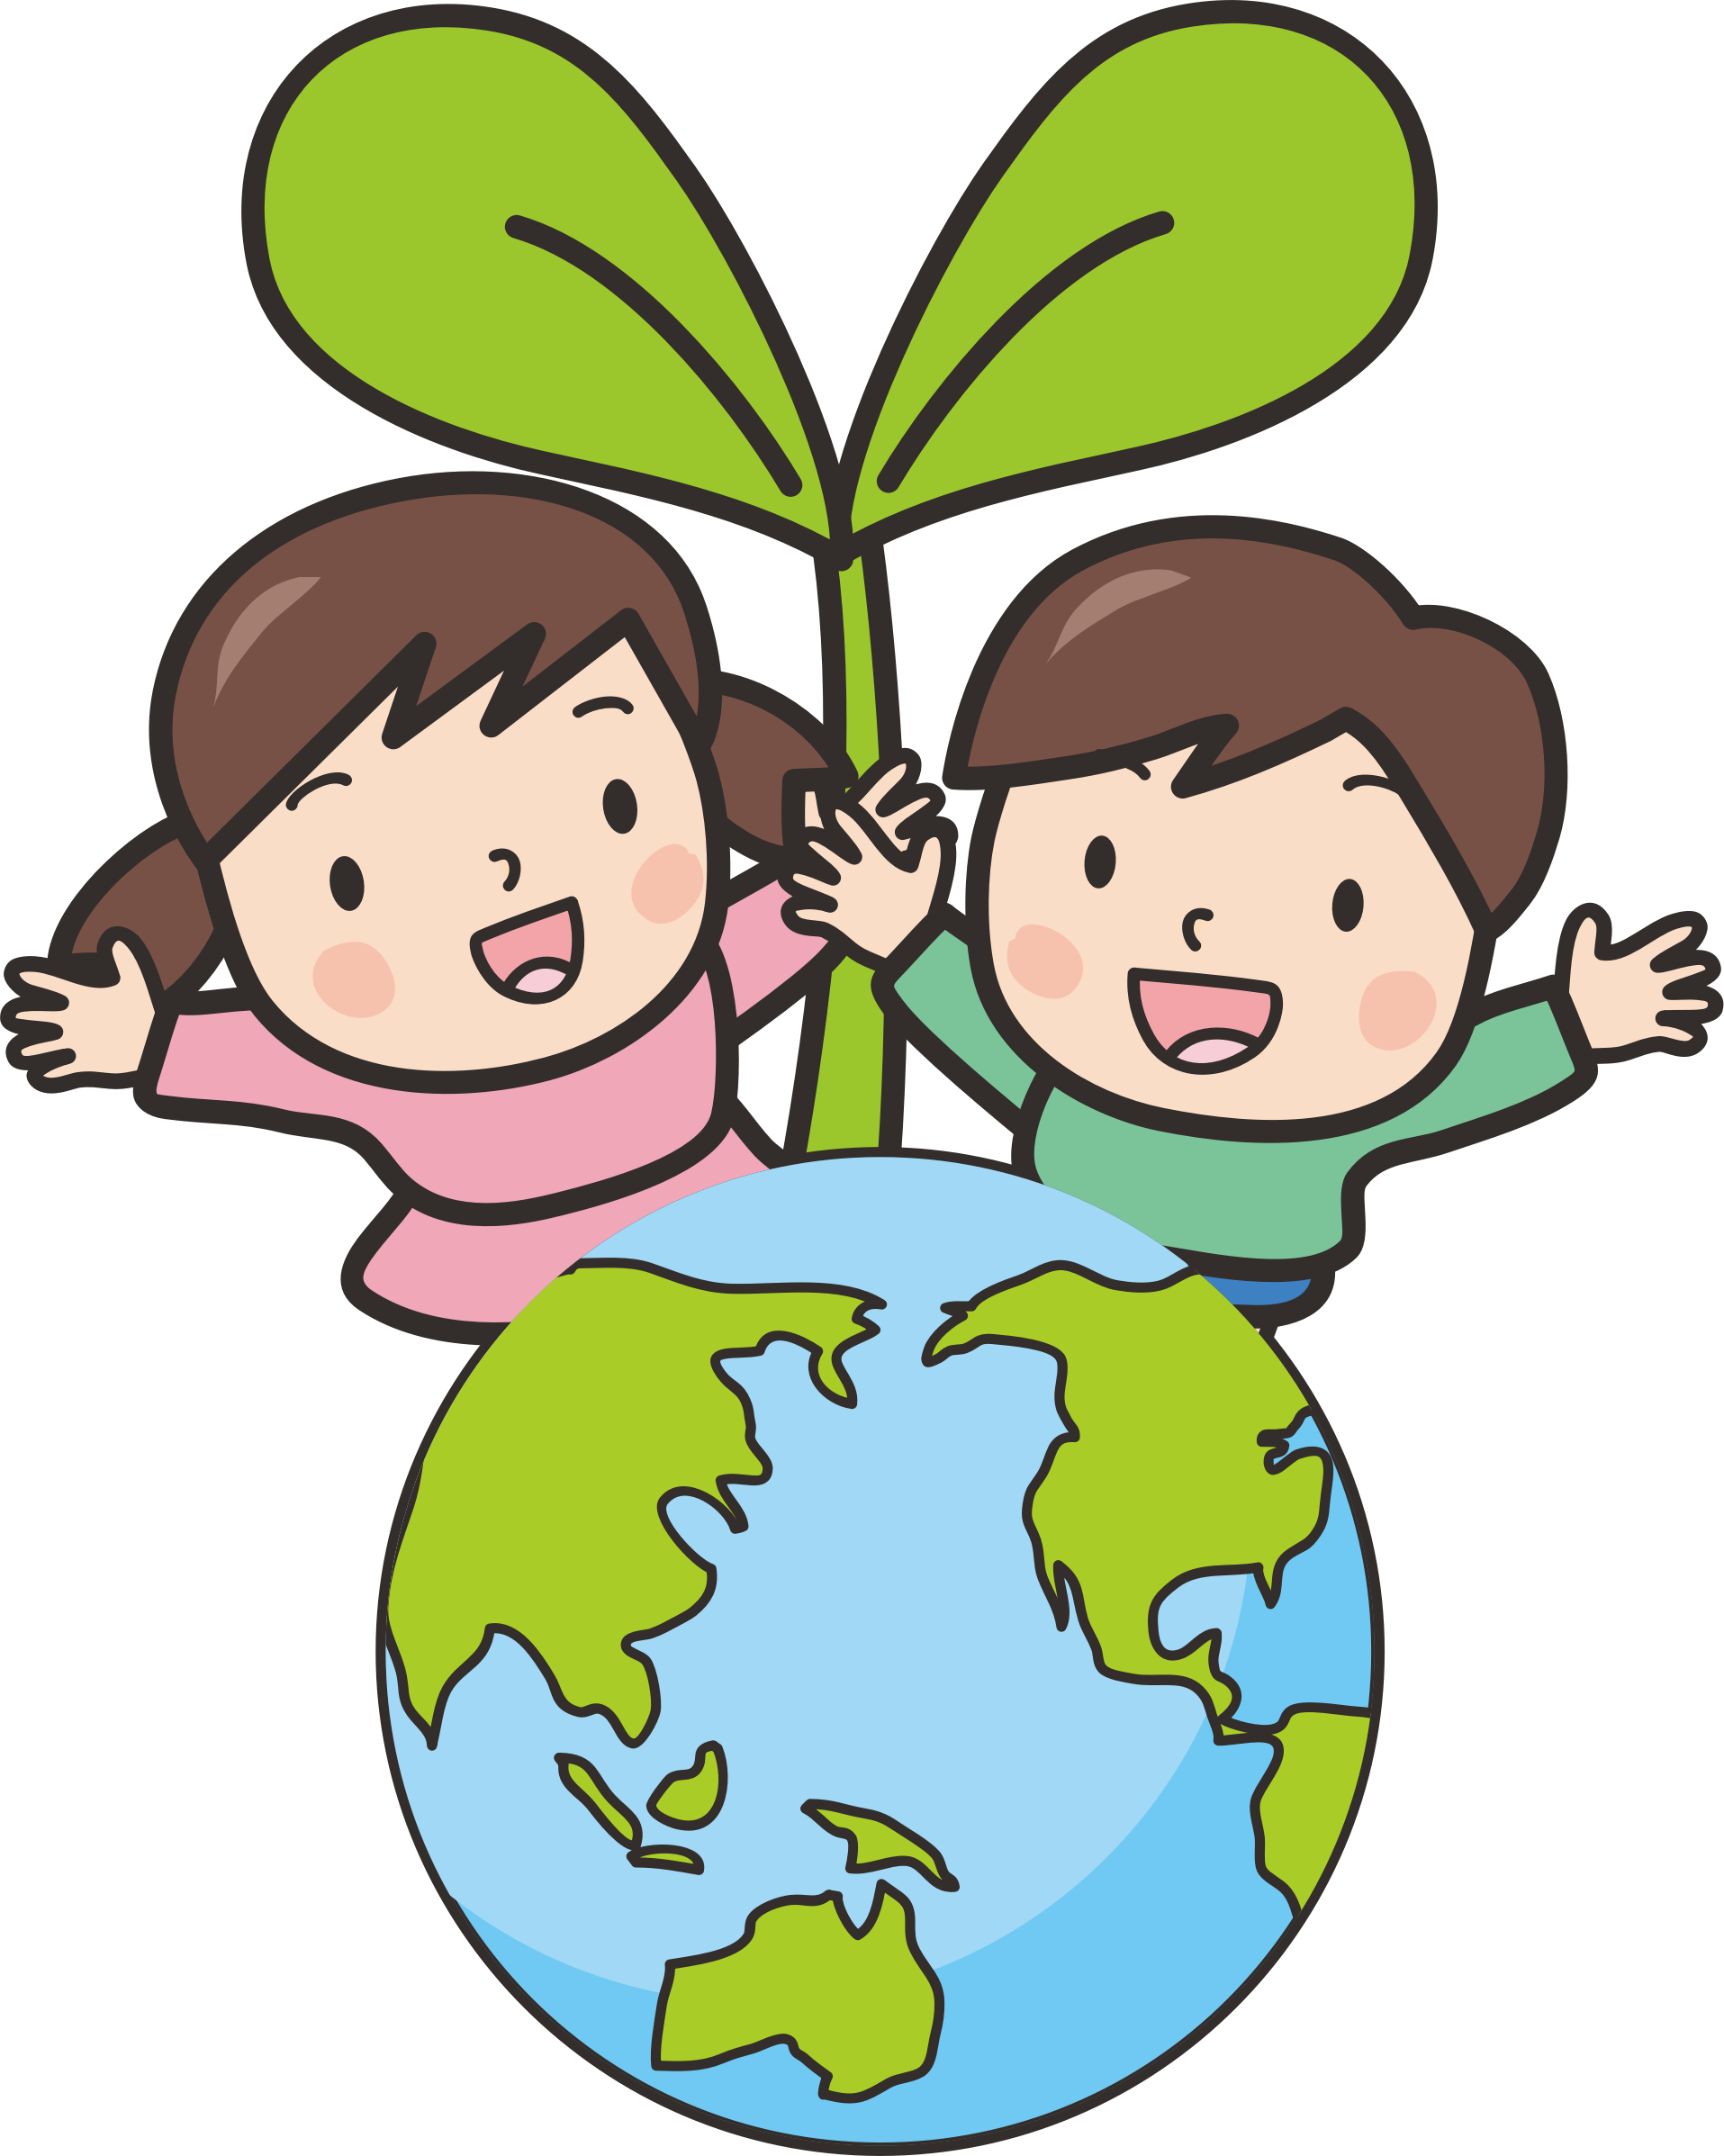 Planet kid. Clipart free download on